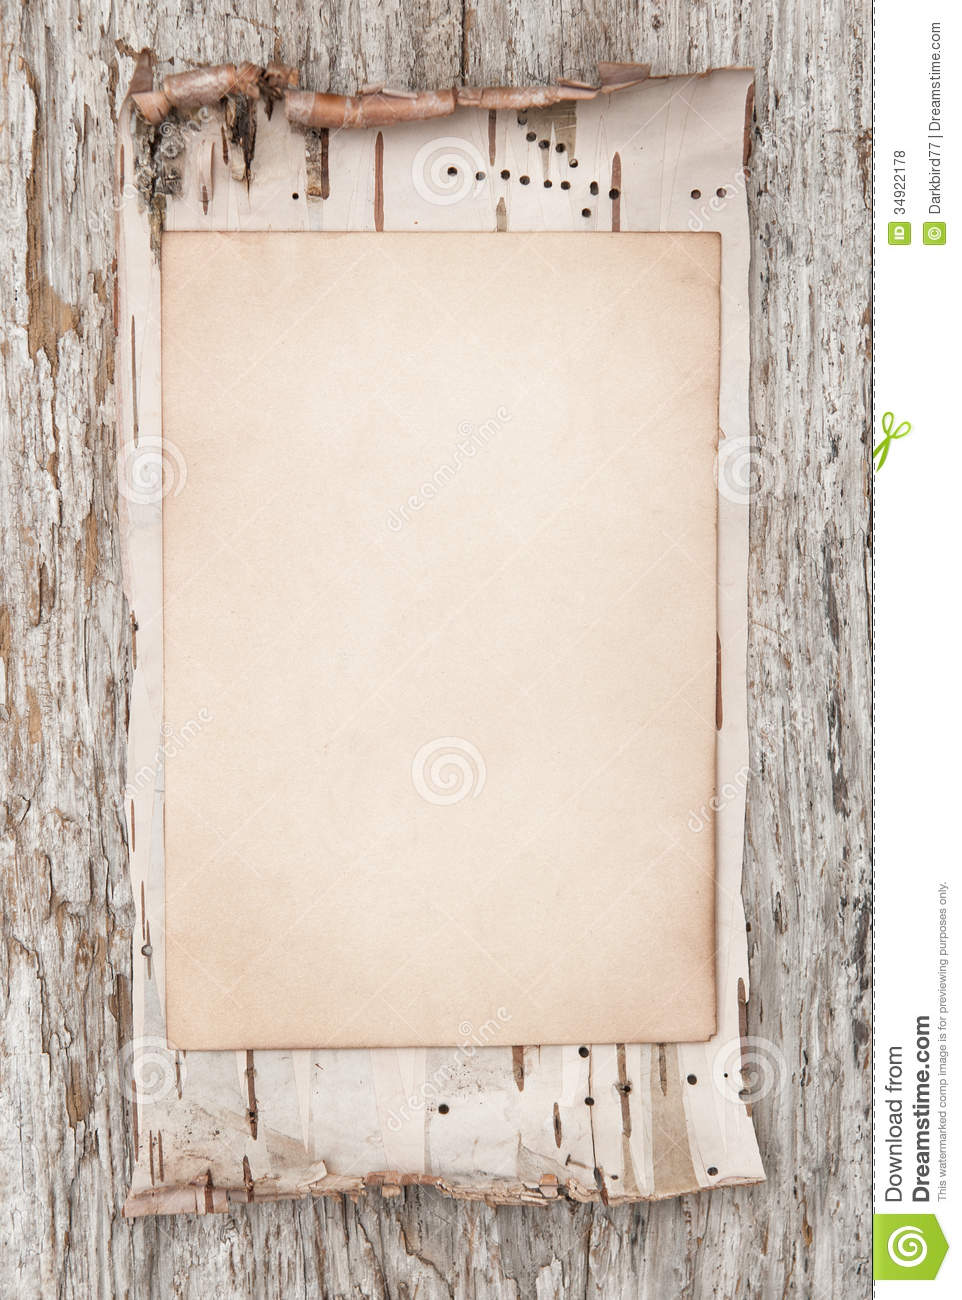 Aged Paper And Birch Bark On The Old Wood Stock Photo - Image of ...